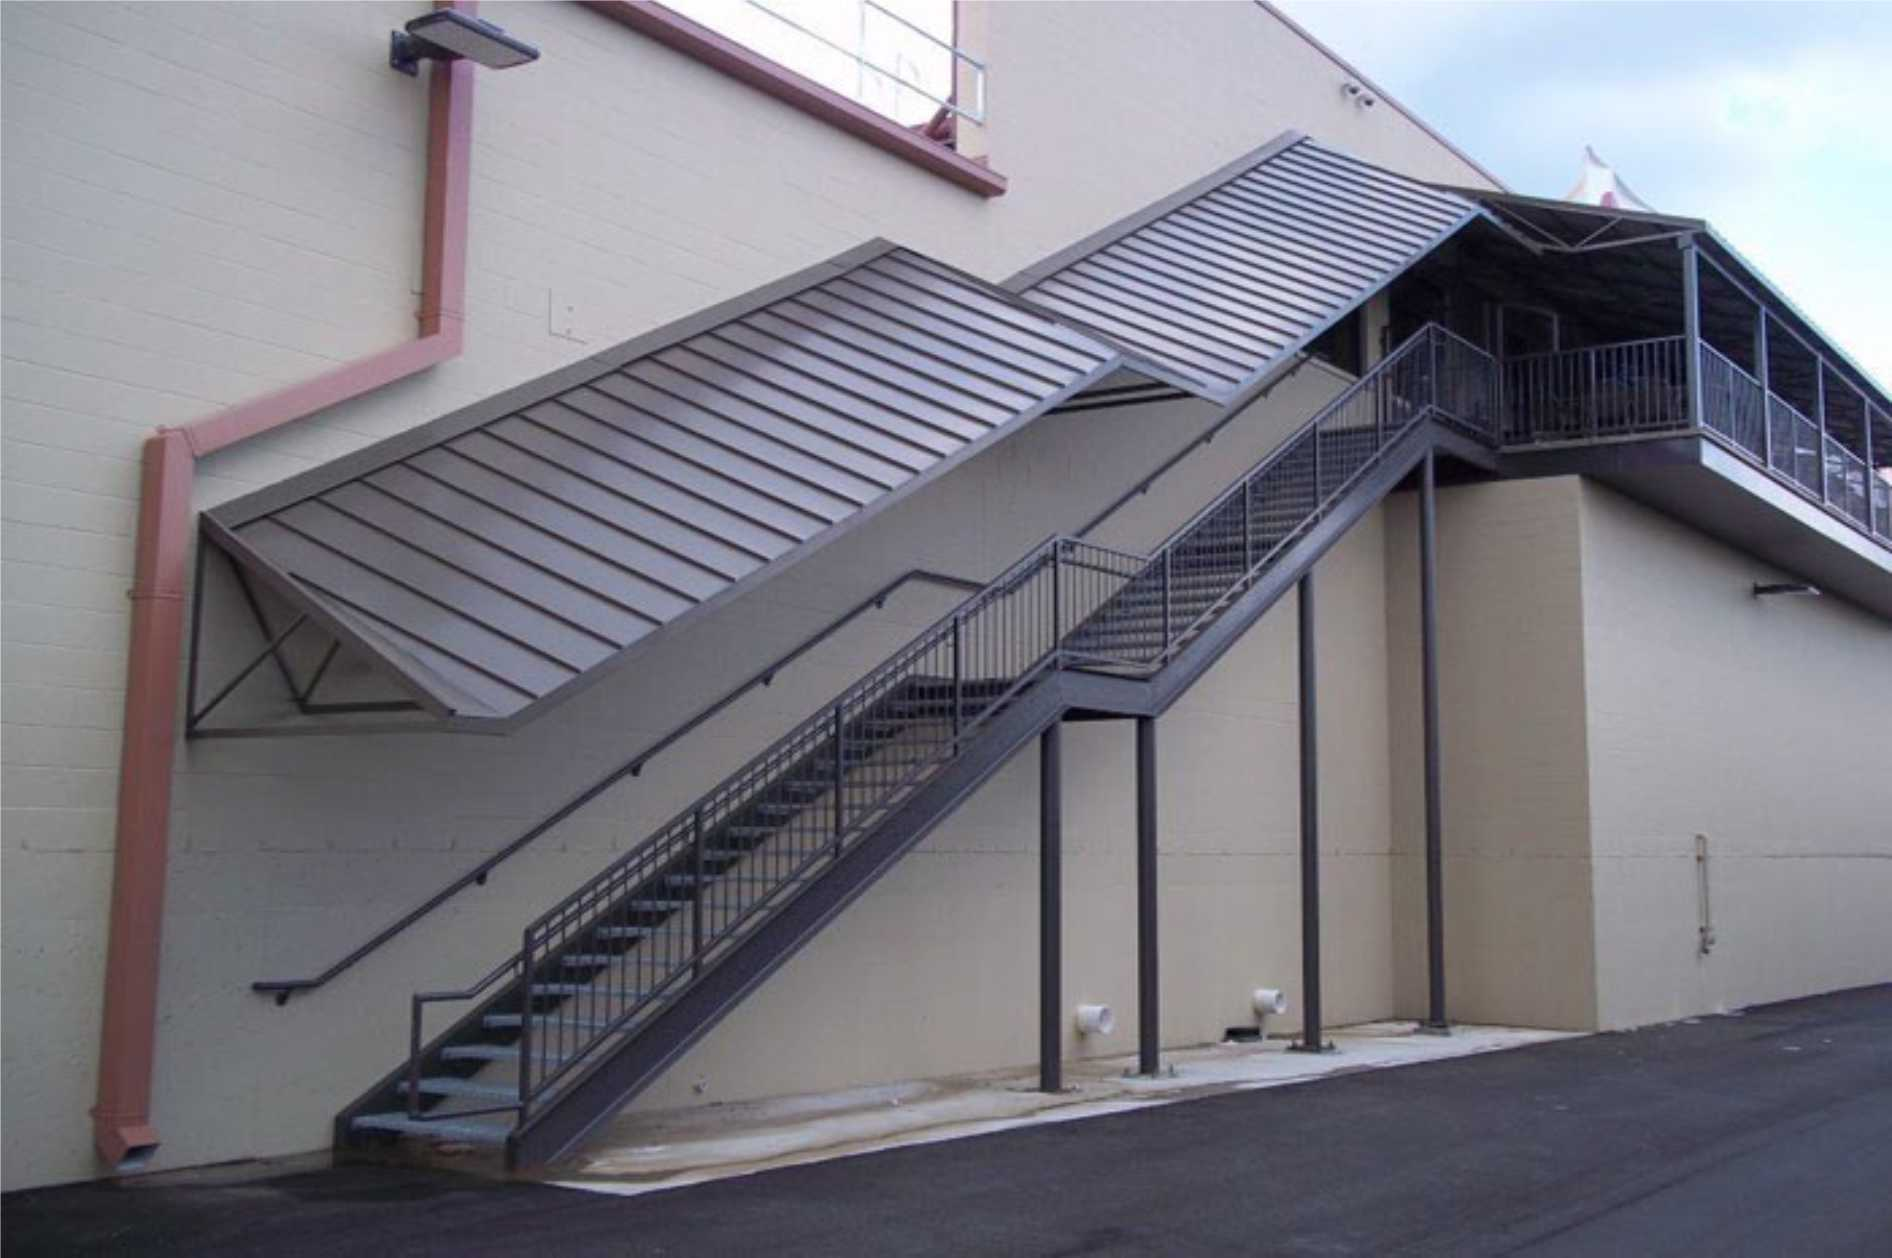 structural canopy over staircase with landing